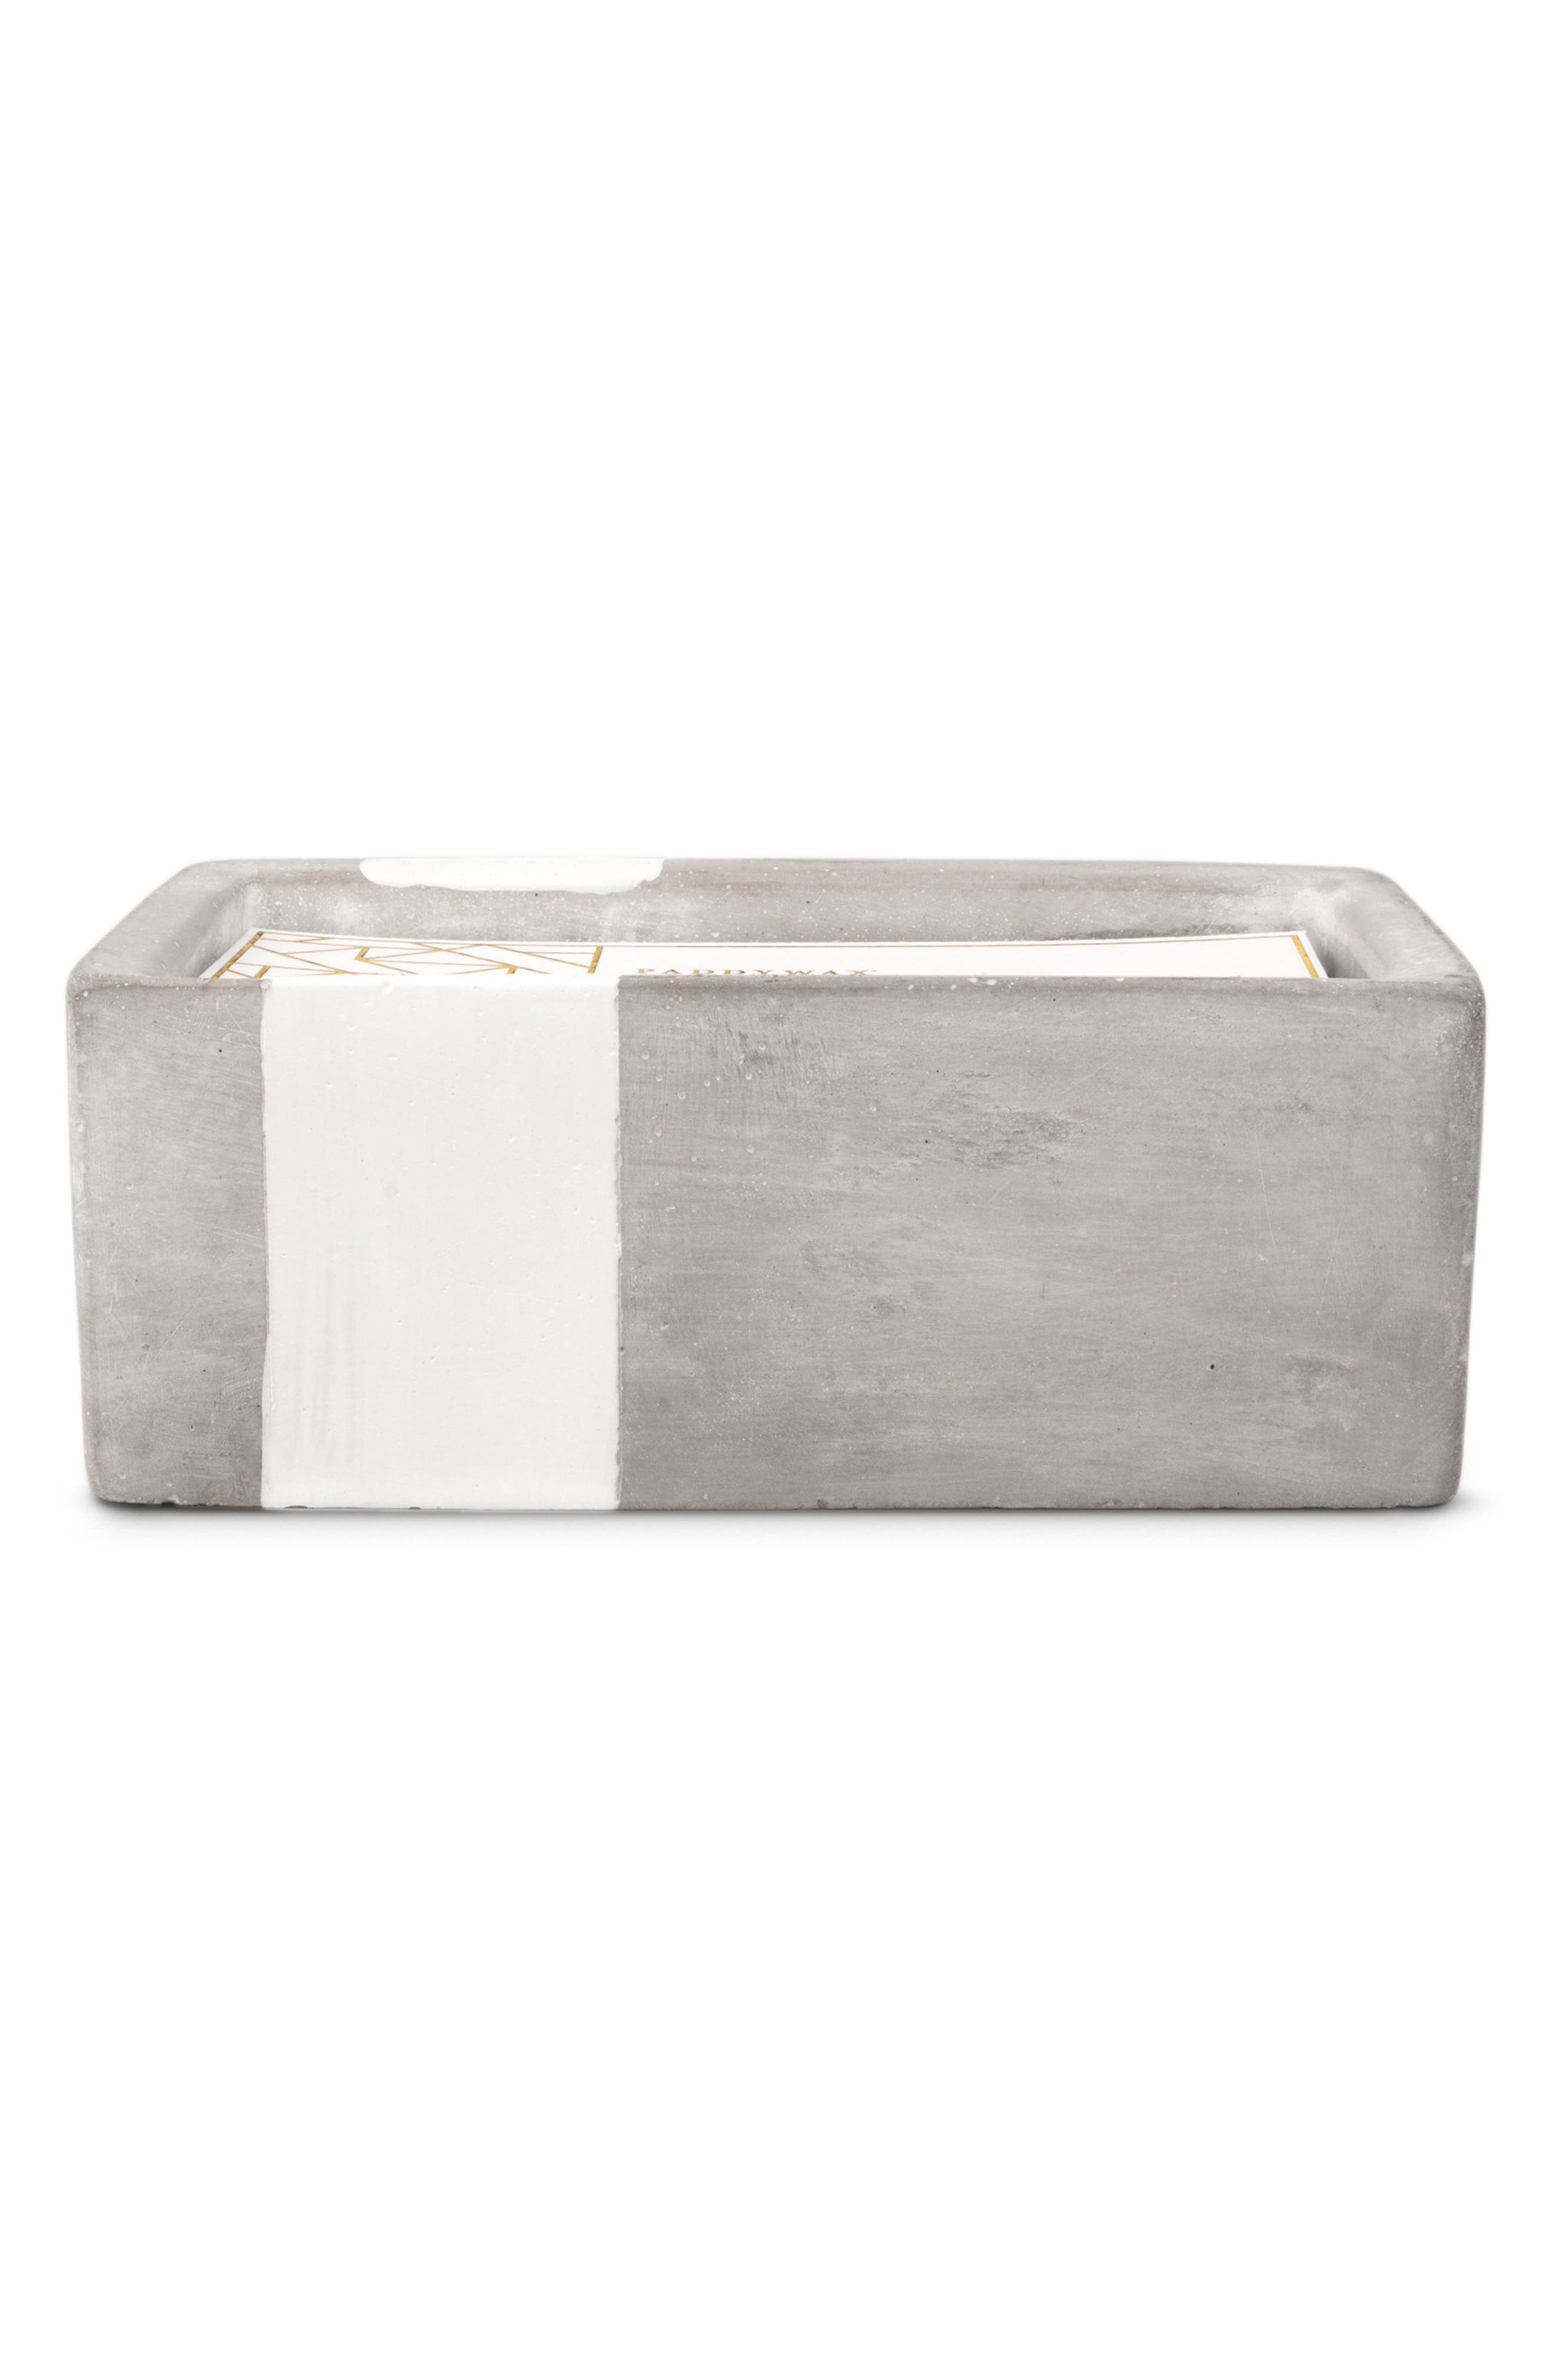 Urban Concrete Soy Wax Candle,                             Main thumbnail 1, color,